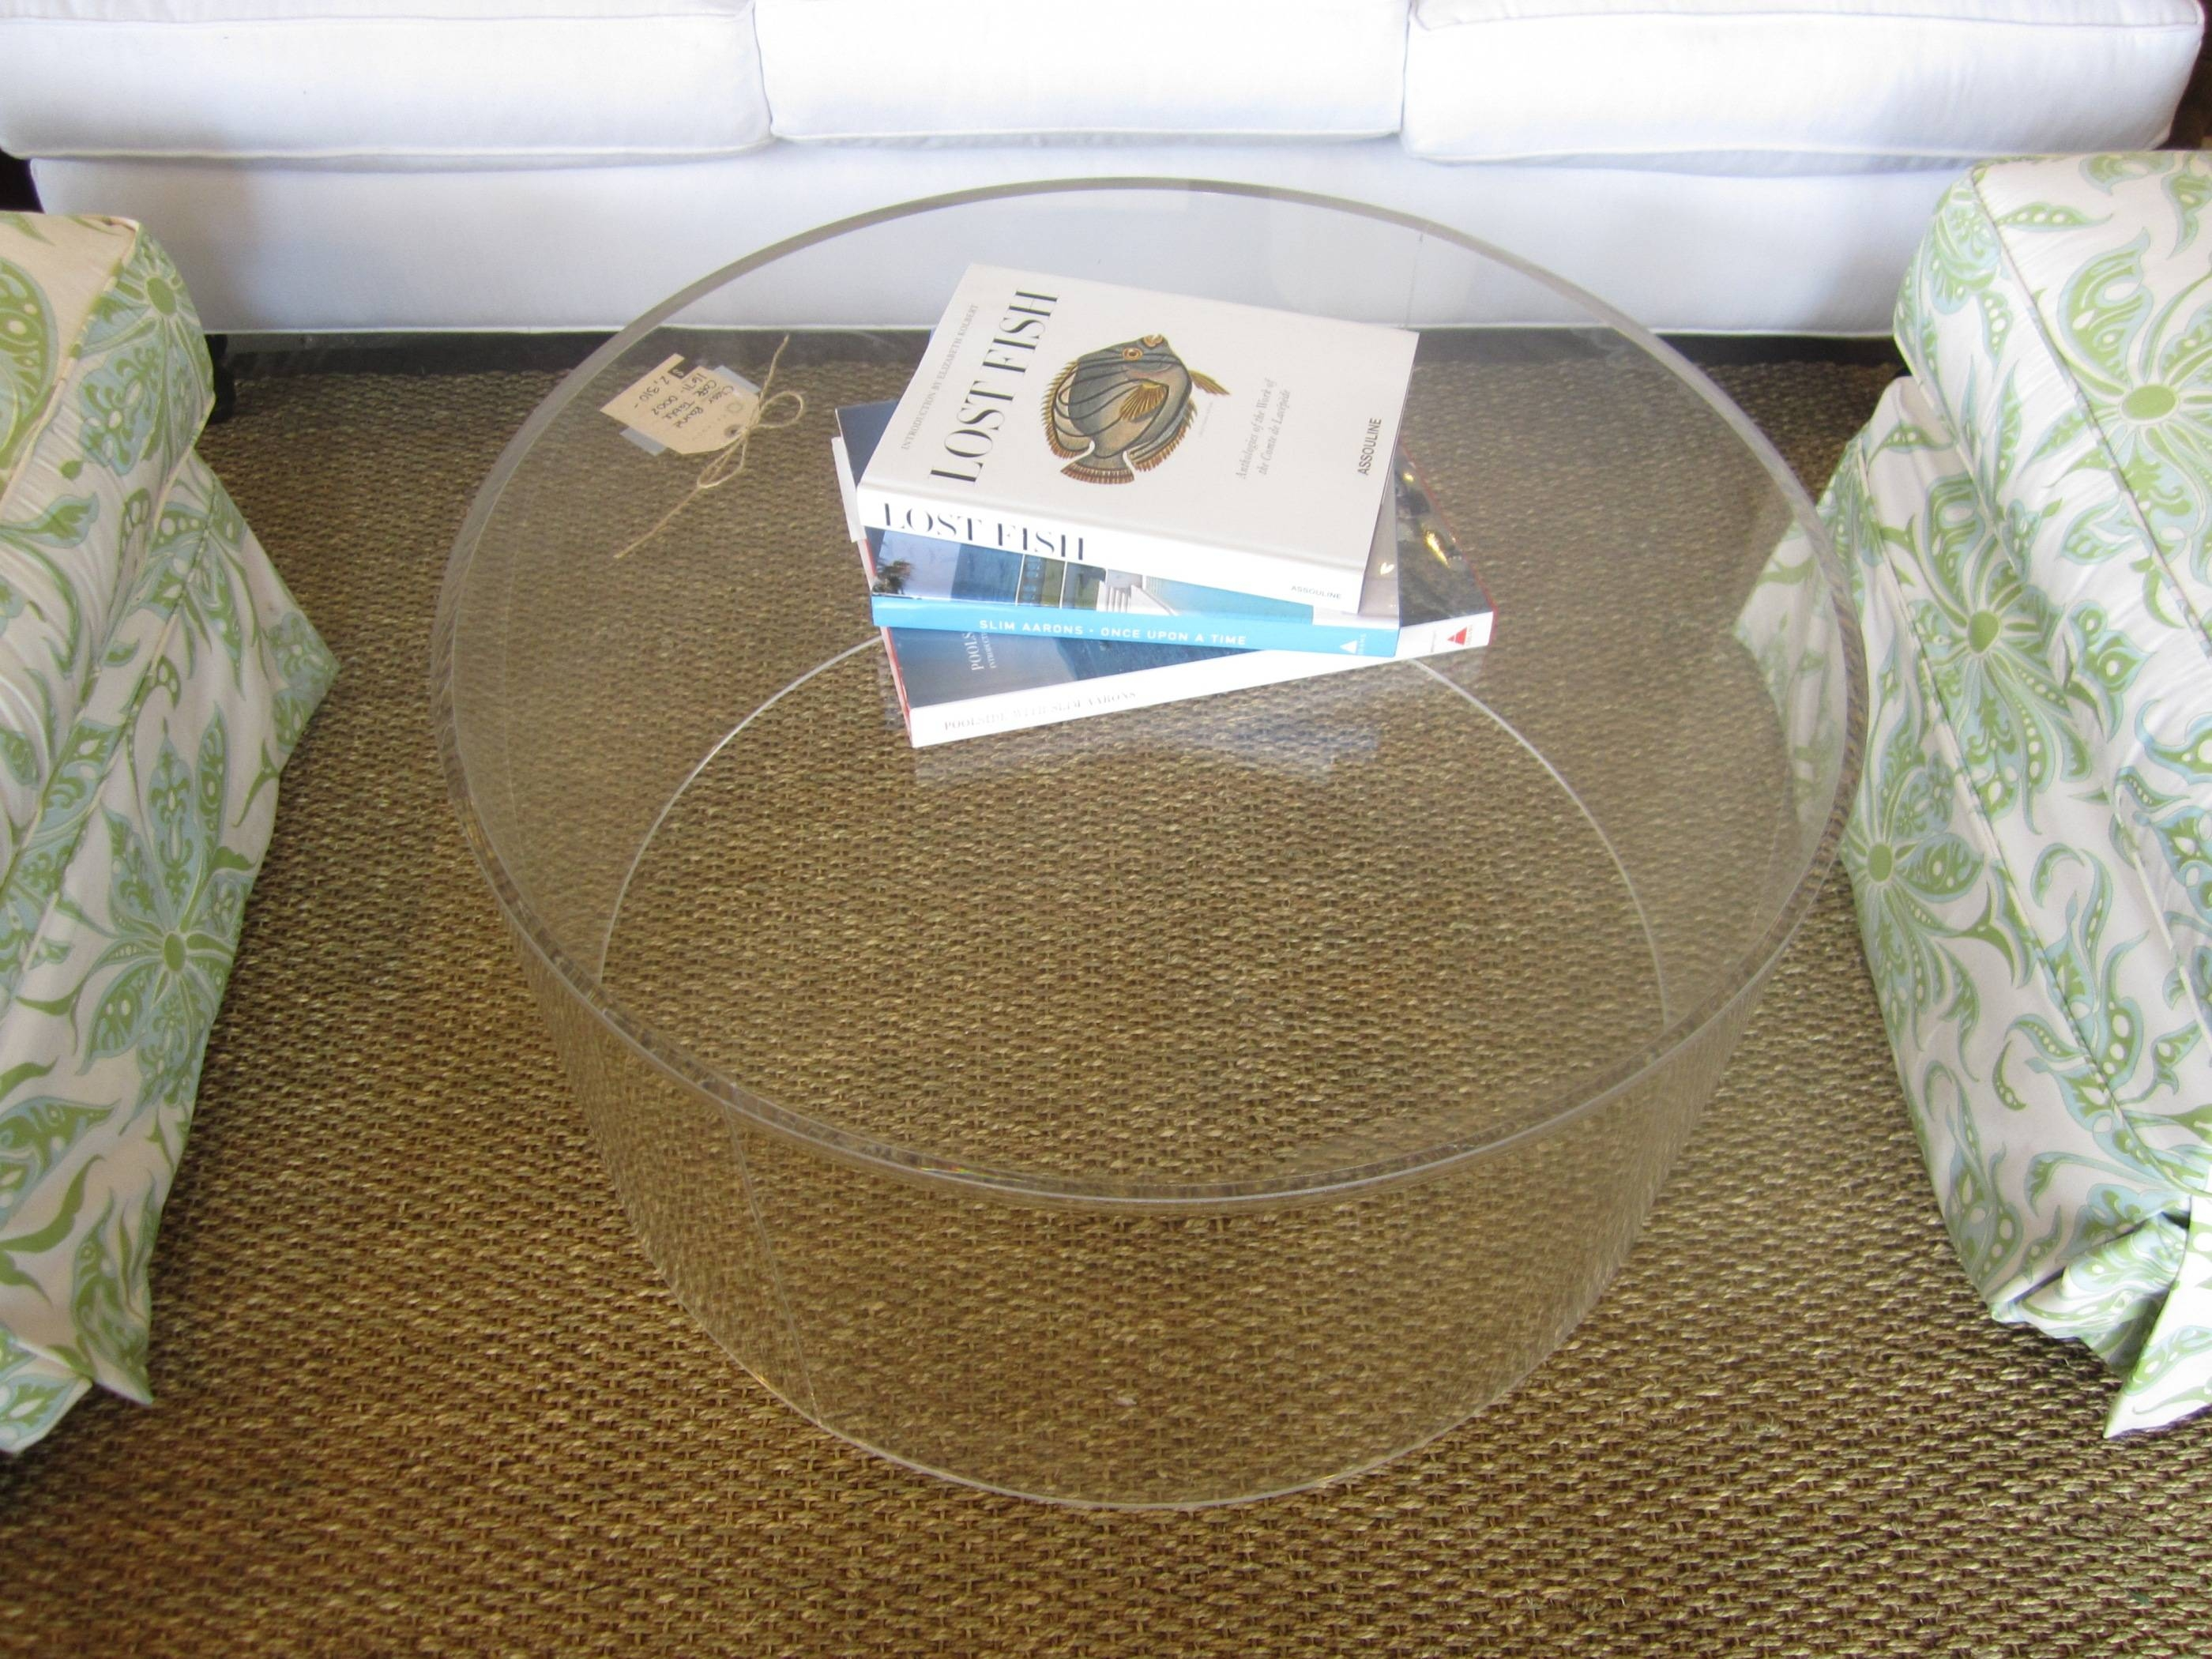 Square Low Clear Acrylic Coffee Table With Four Legs – Decofurnish Intended For Large Square Low Coffee Tables (View 19 of 30)